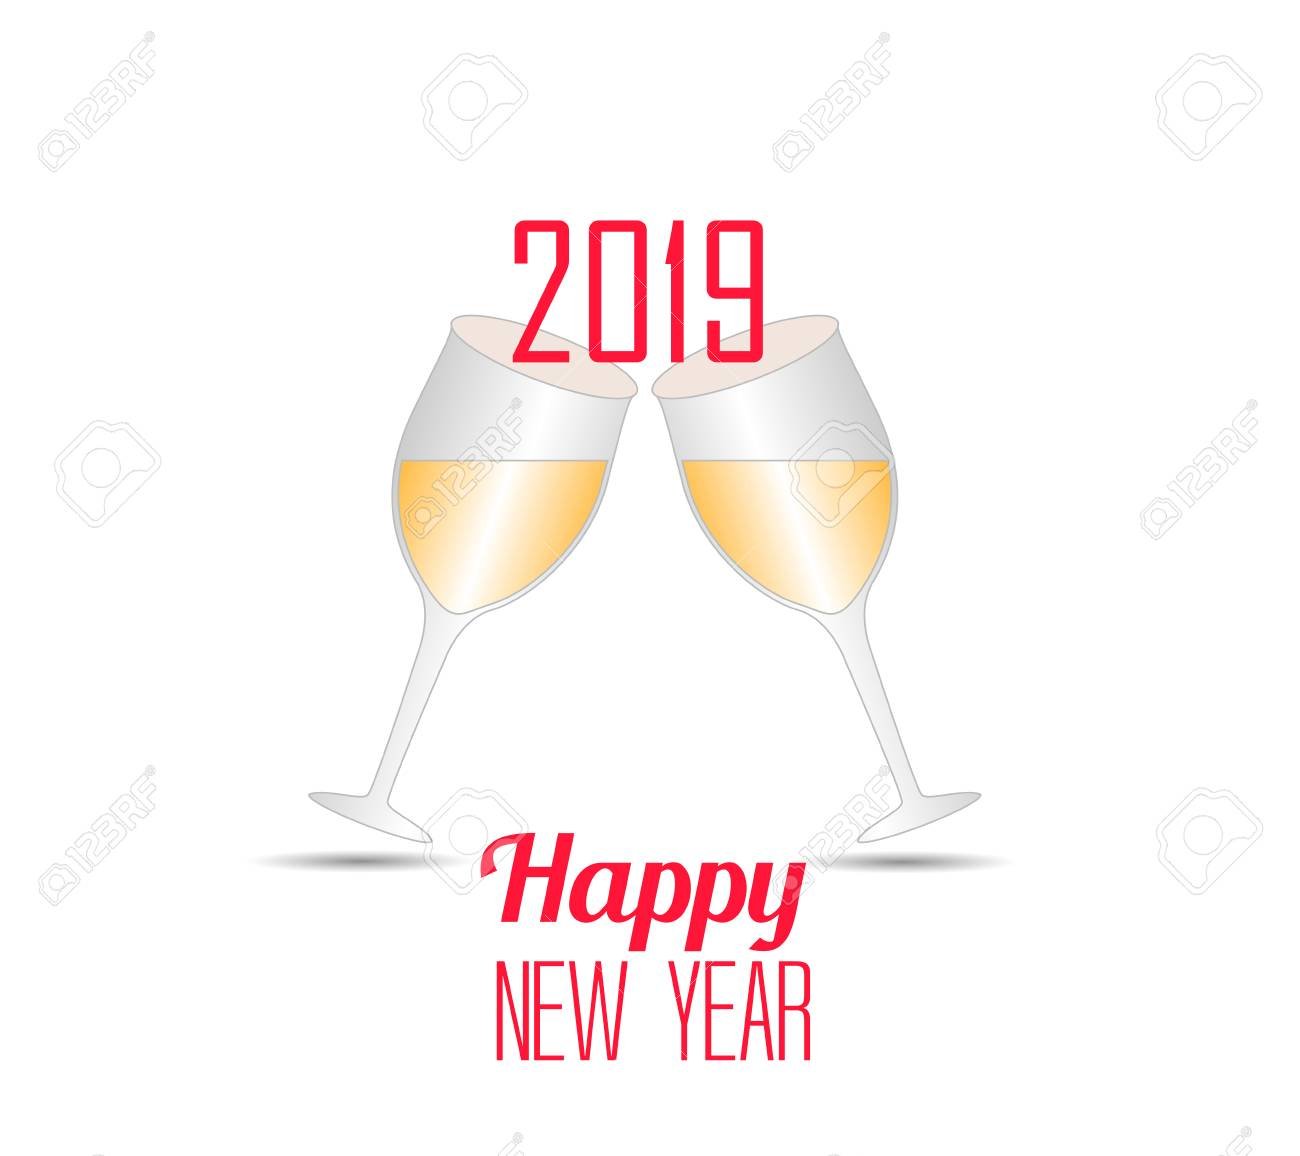 happy new year 2019 template vector illustration with champagne glasses stock vector 98015175